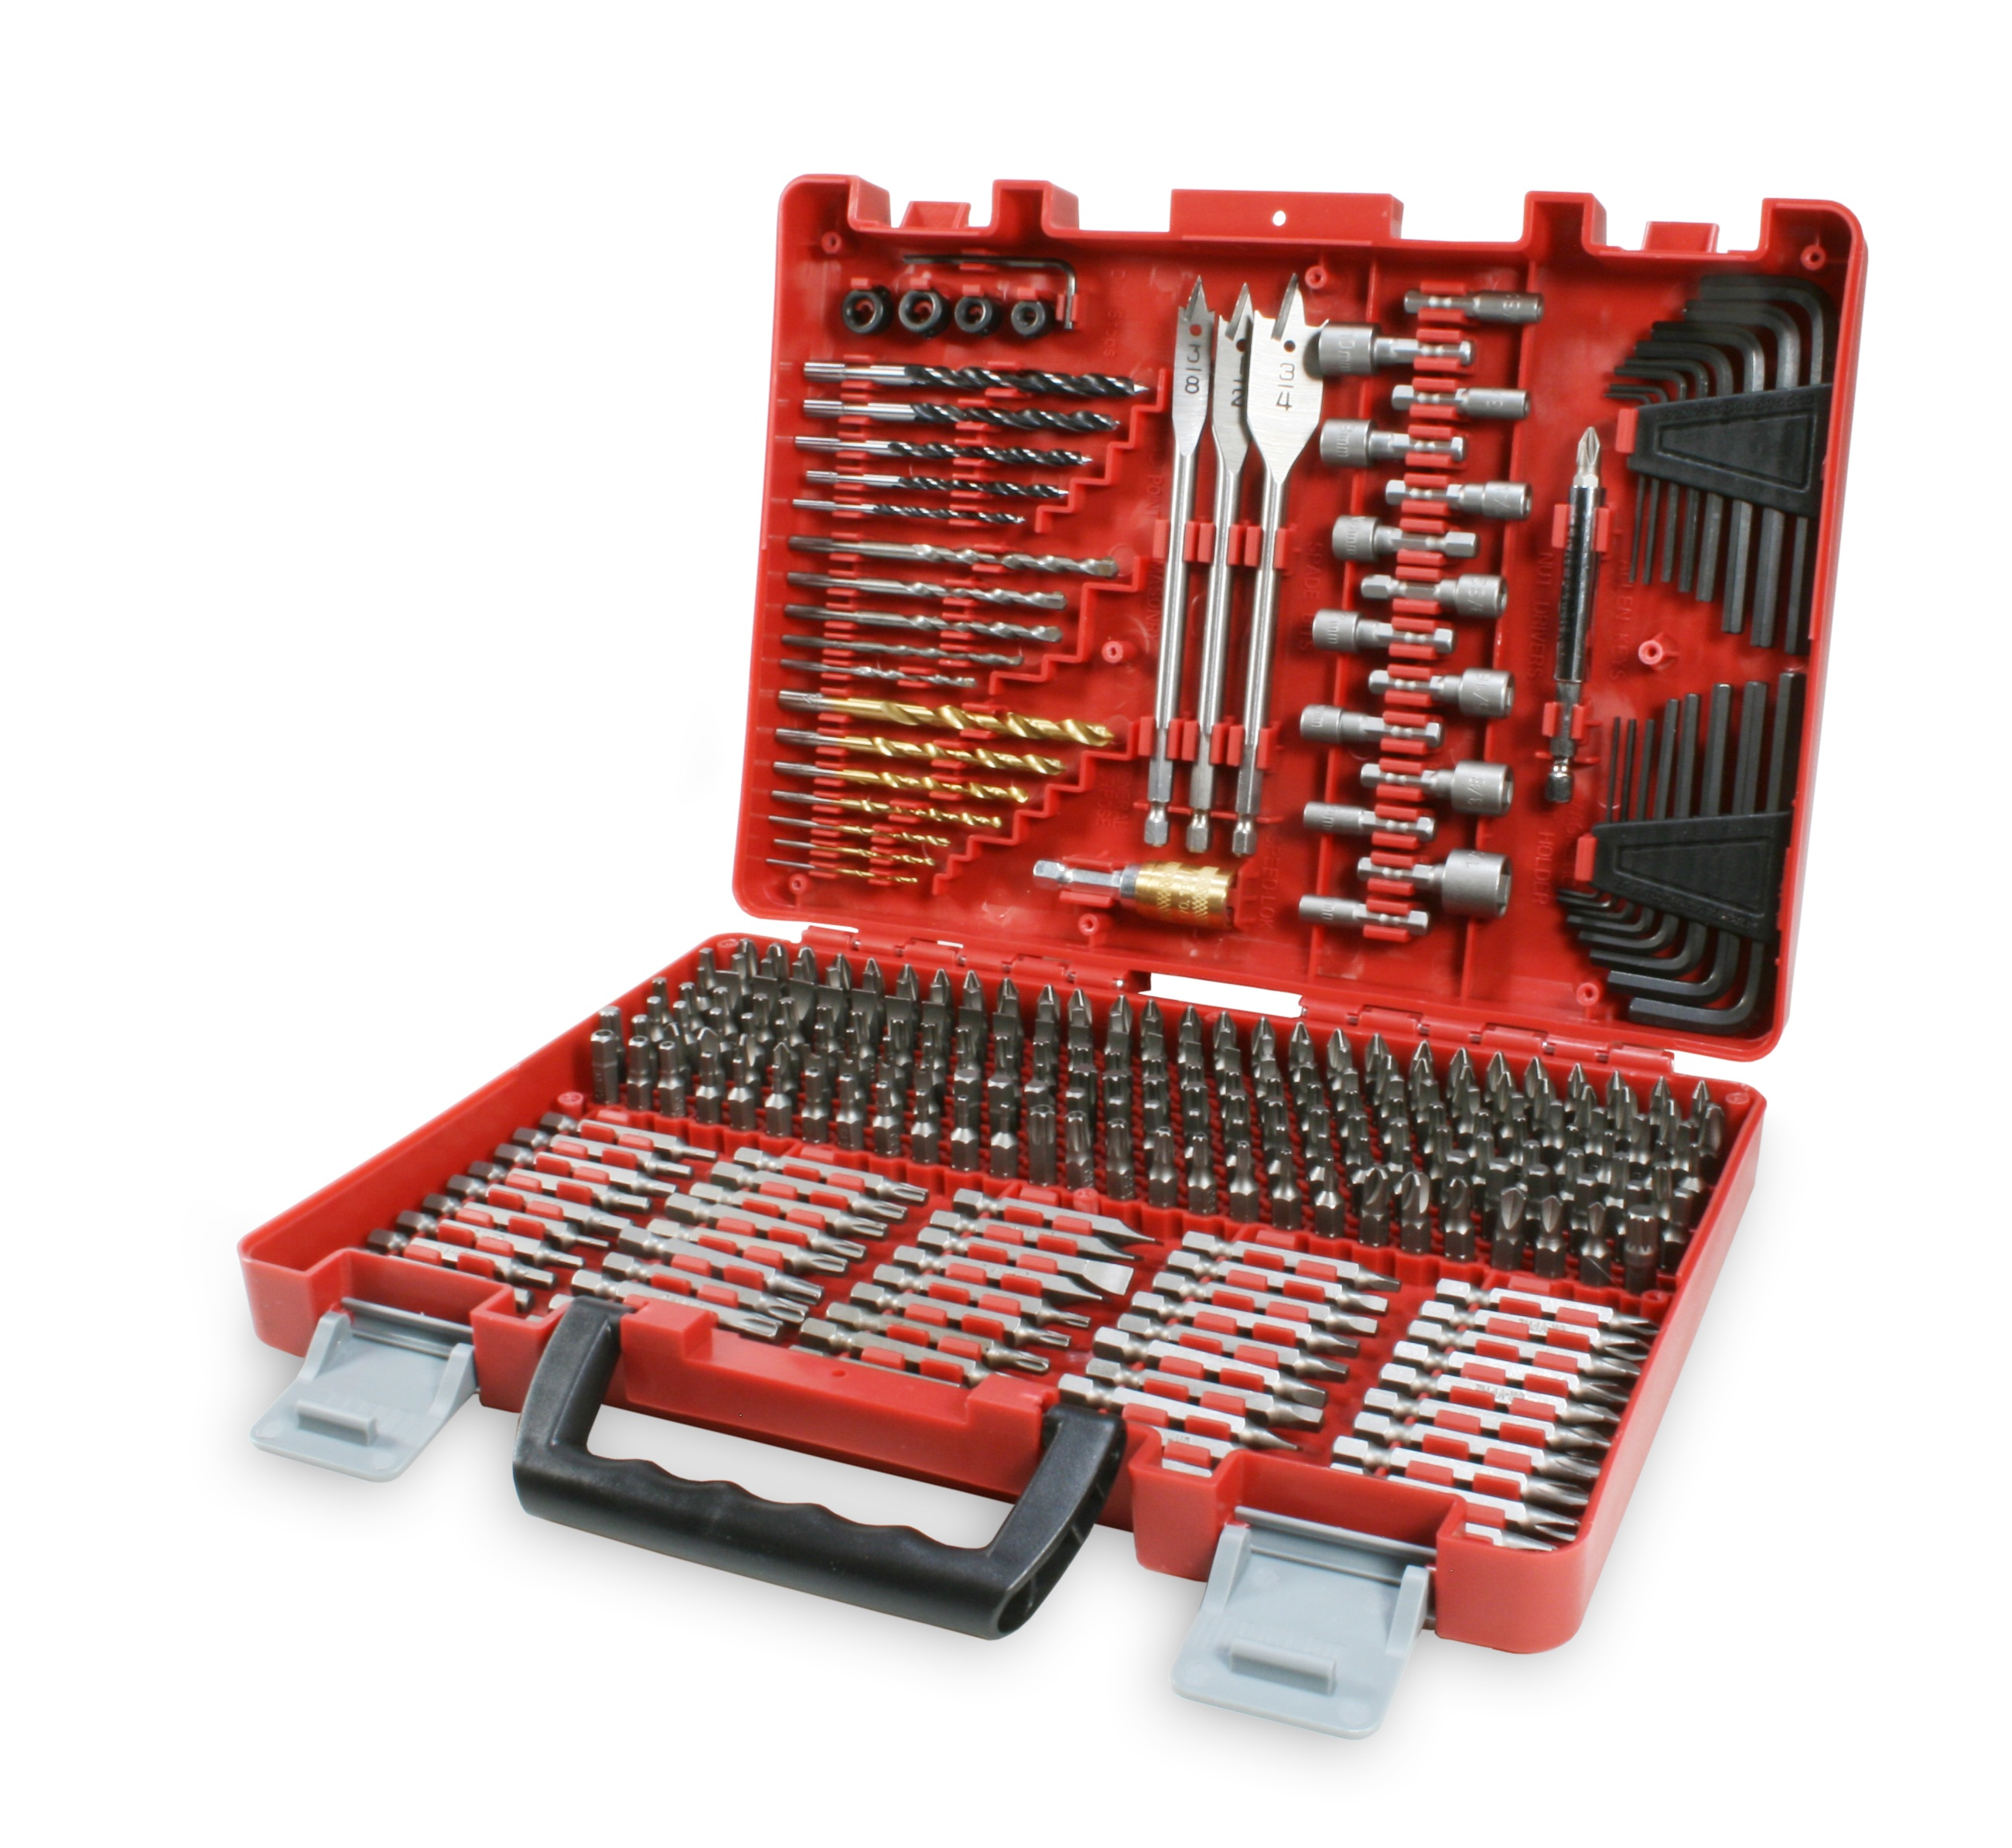 300 Piece Craftsman Drill Bit Accessory Kit 22 49 At Sears Essential Woodworking Tools Woodworking Tools Router Woodworking Tools Storage